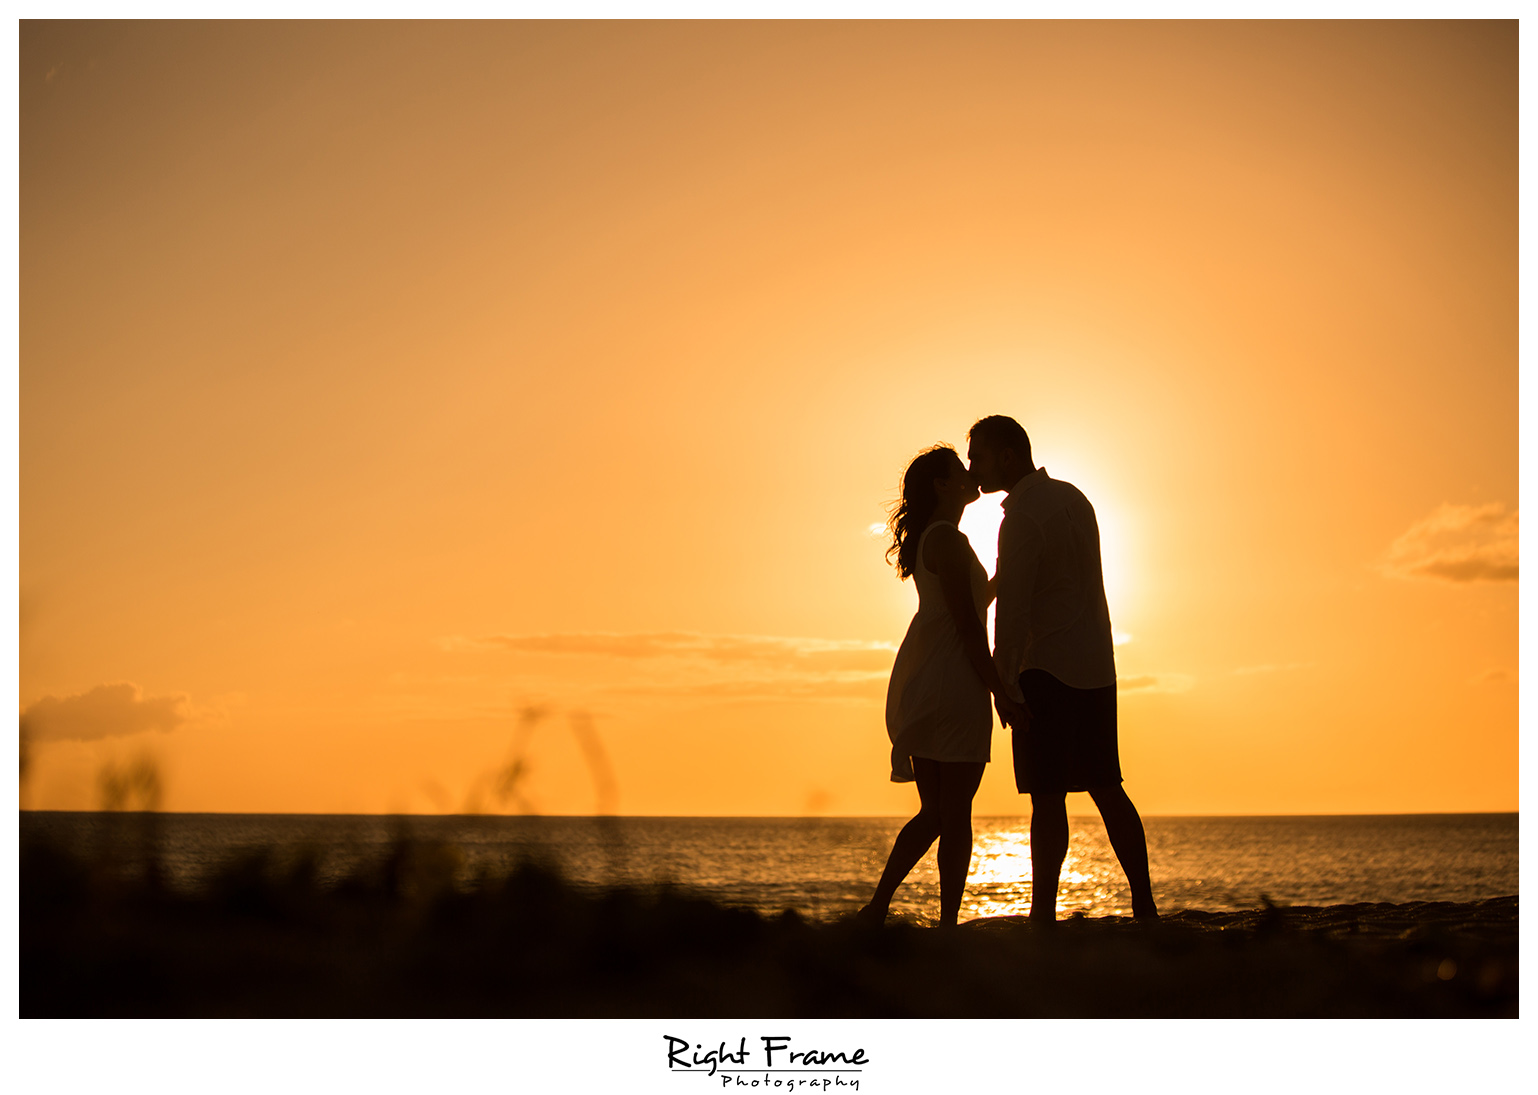 Romantic Sunset Beach Engagement Photography Oahu Hawaii